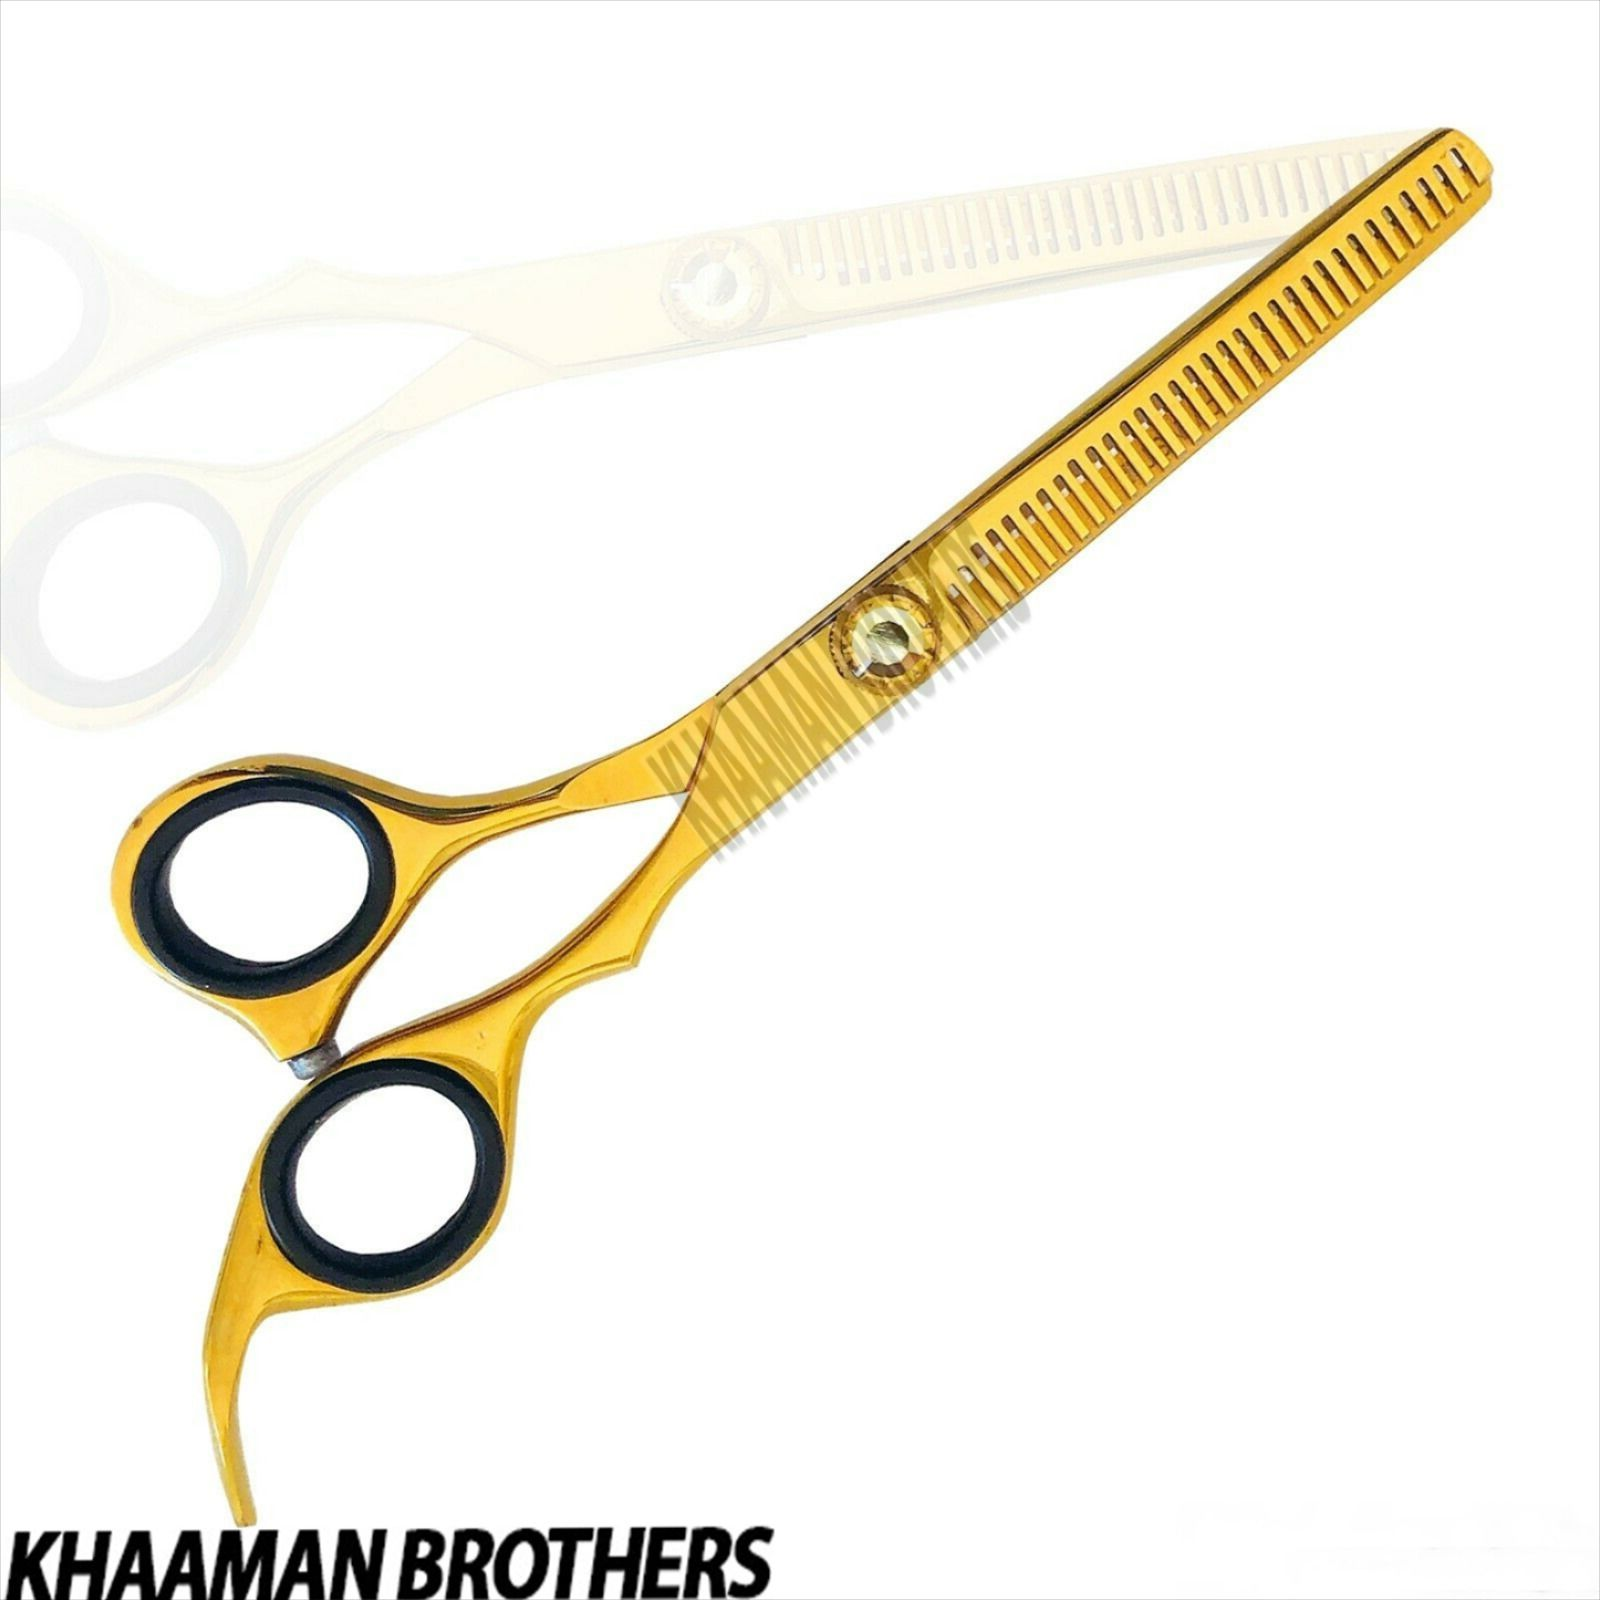 Hair Thinning Scissor In Gold Plating With Private Label Thinning Scissors Barber Scissors Hair Thinning Scissors